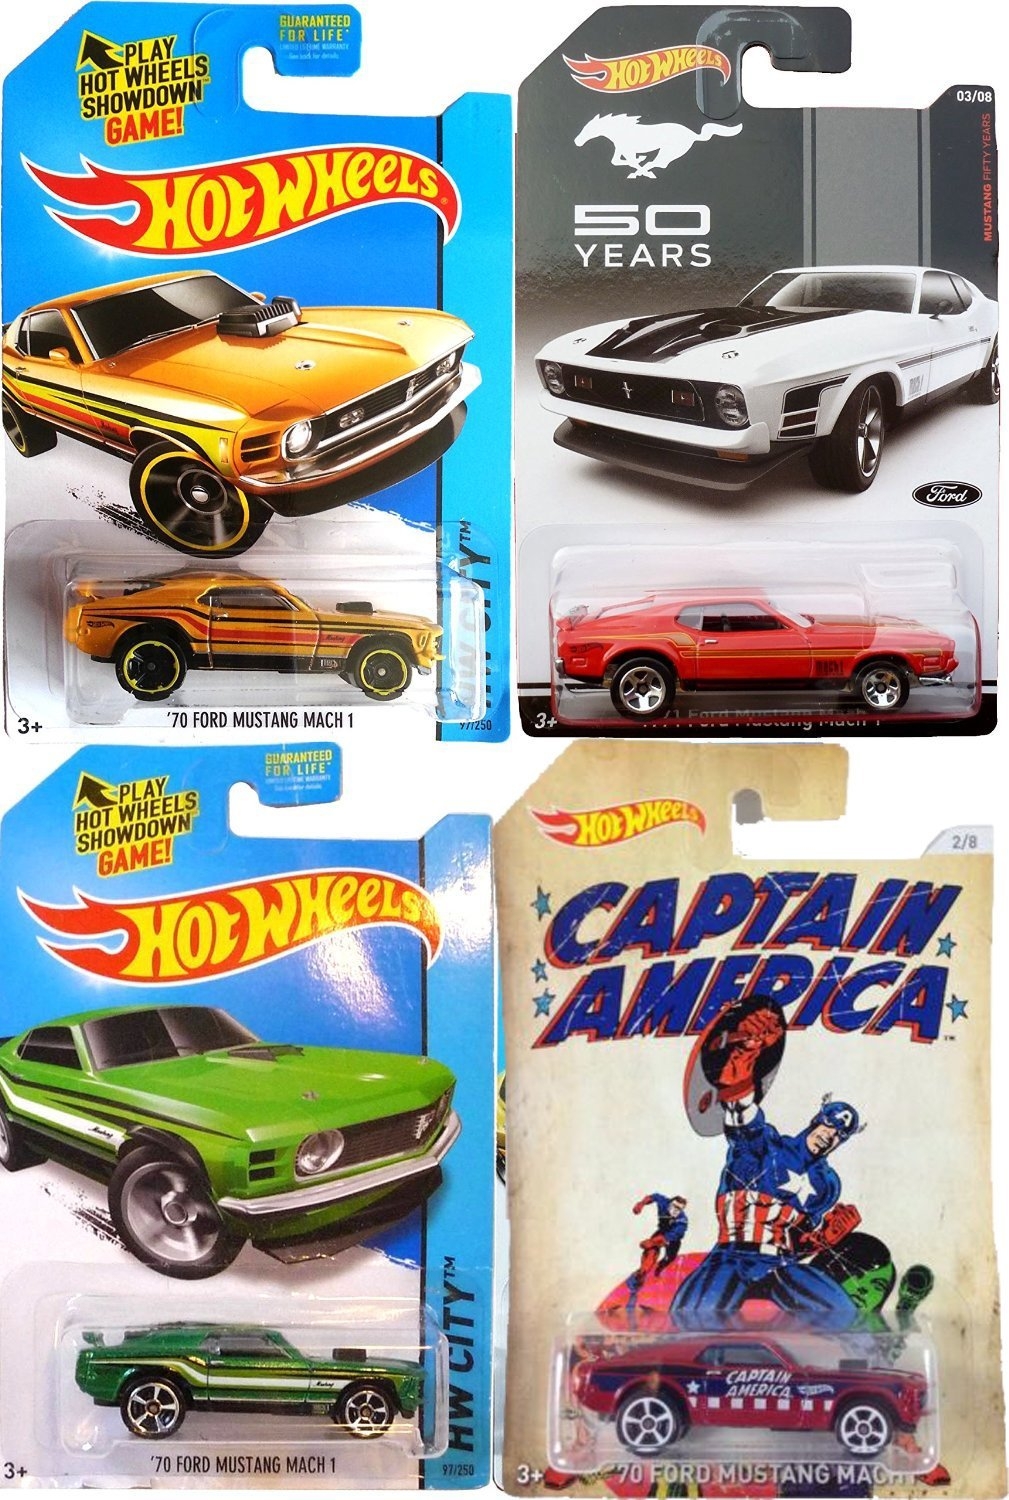 Ford Mach 1 Hot Wheels Mustang 50 Years + Captain America set of 4 Vehicles in Protective Cases with Exclusive Red Mustang & 70 Mach 1